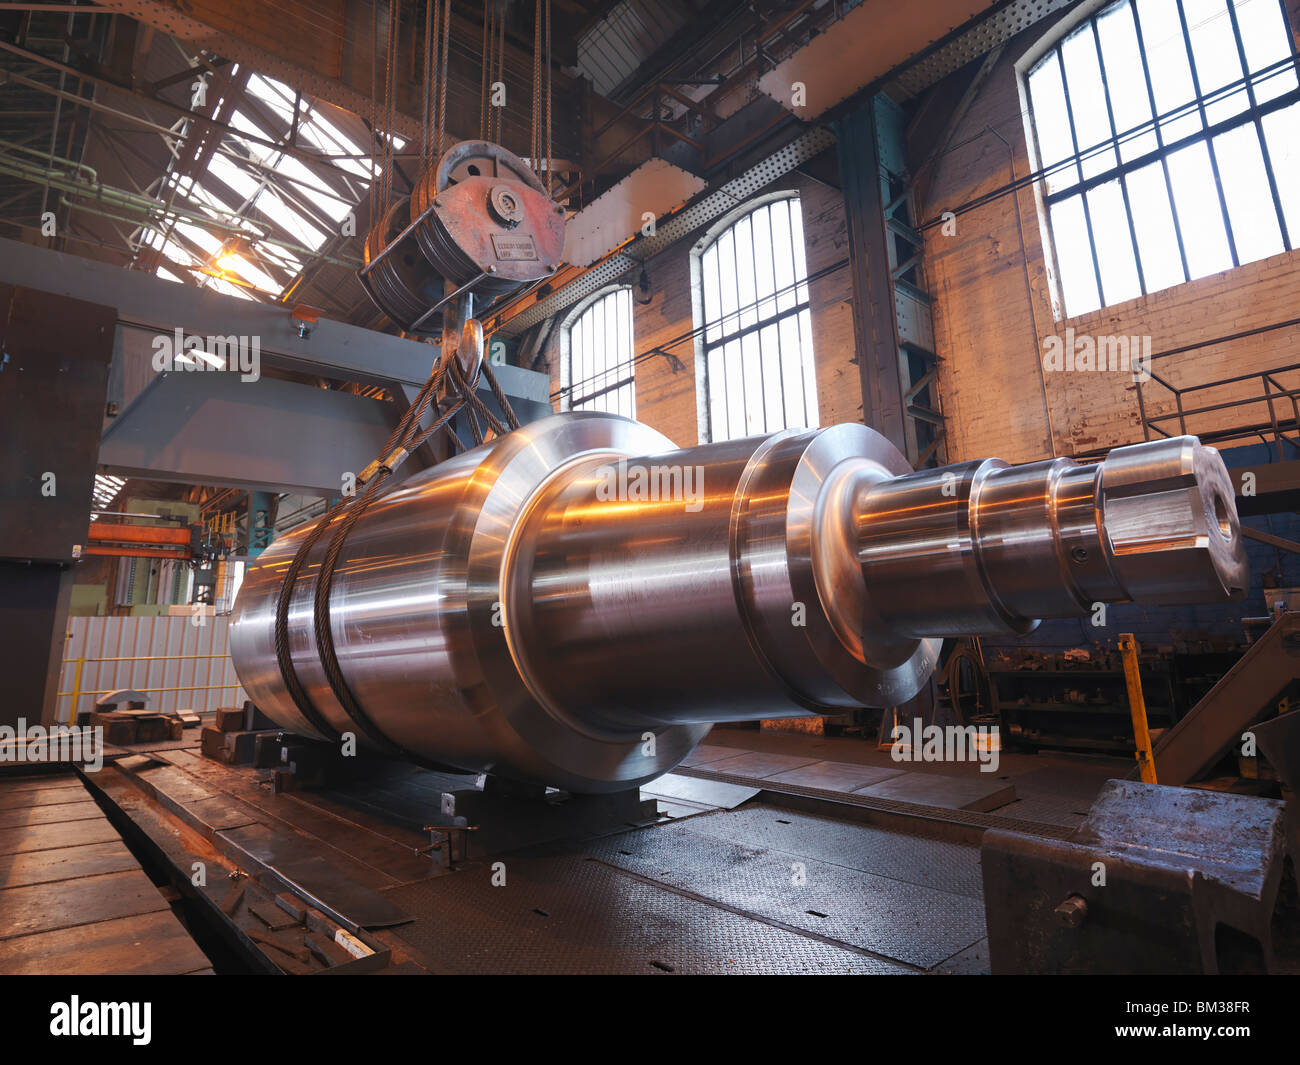 Finished Steel Product - Stock Image